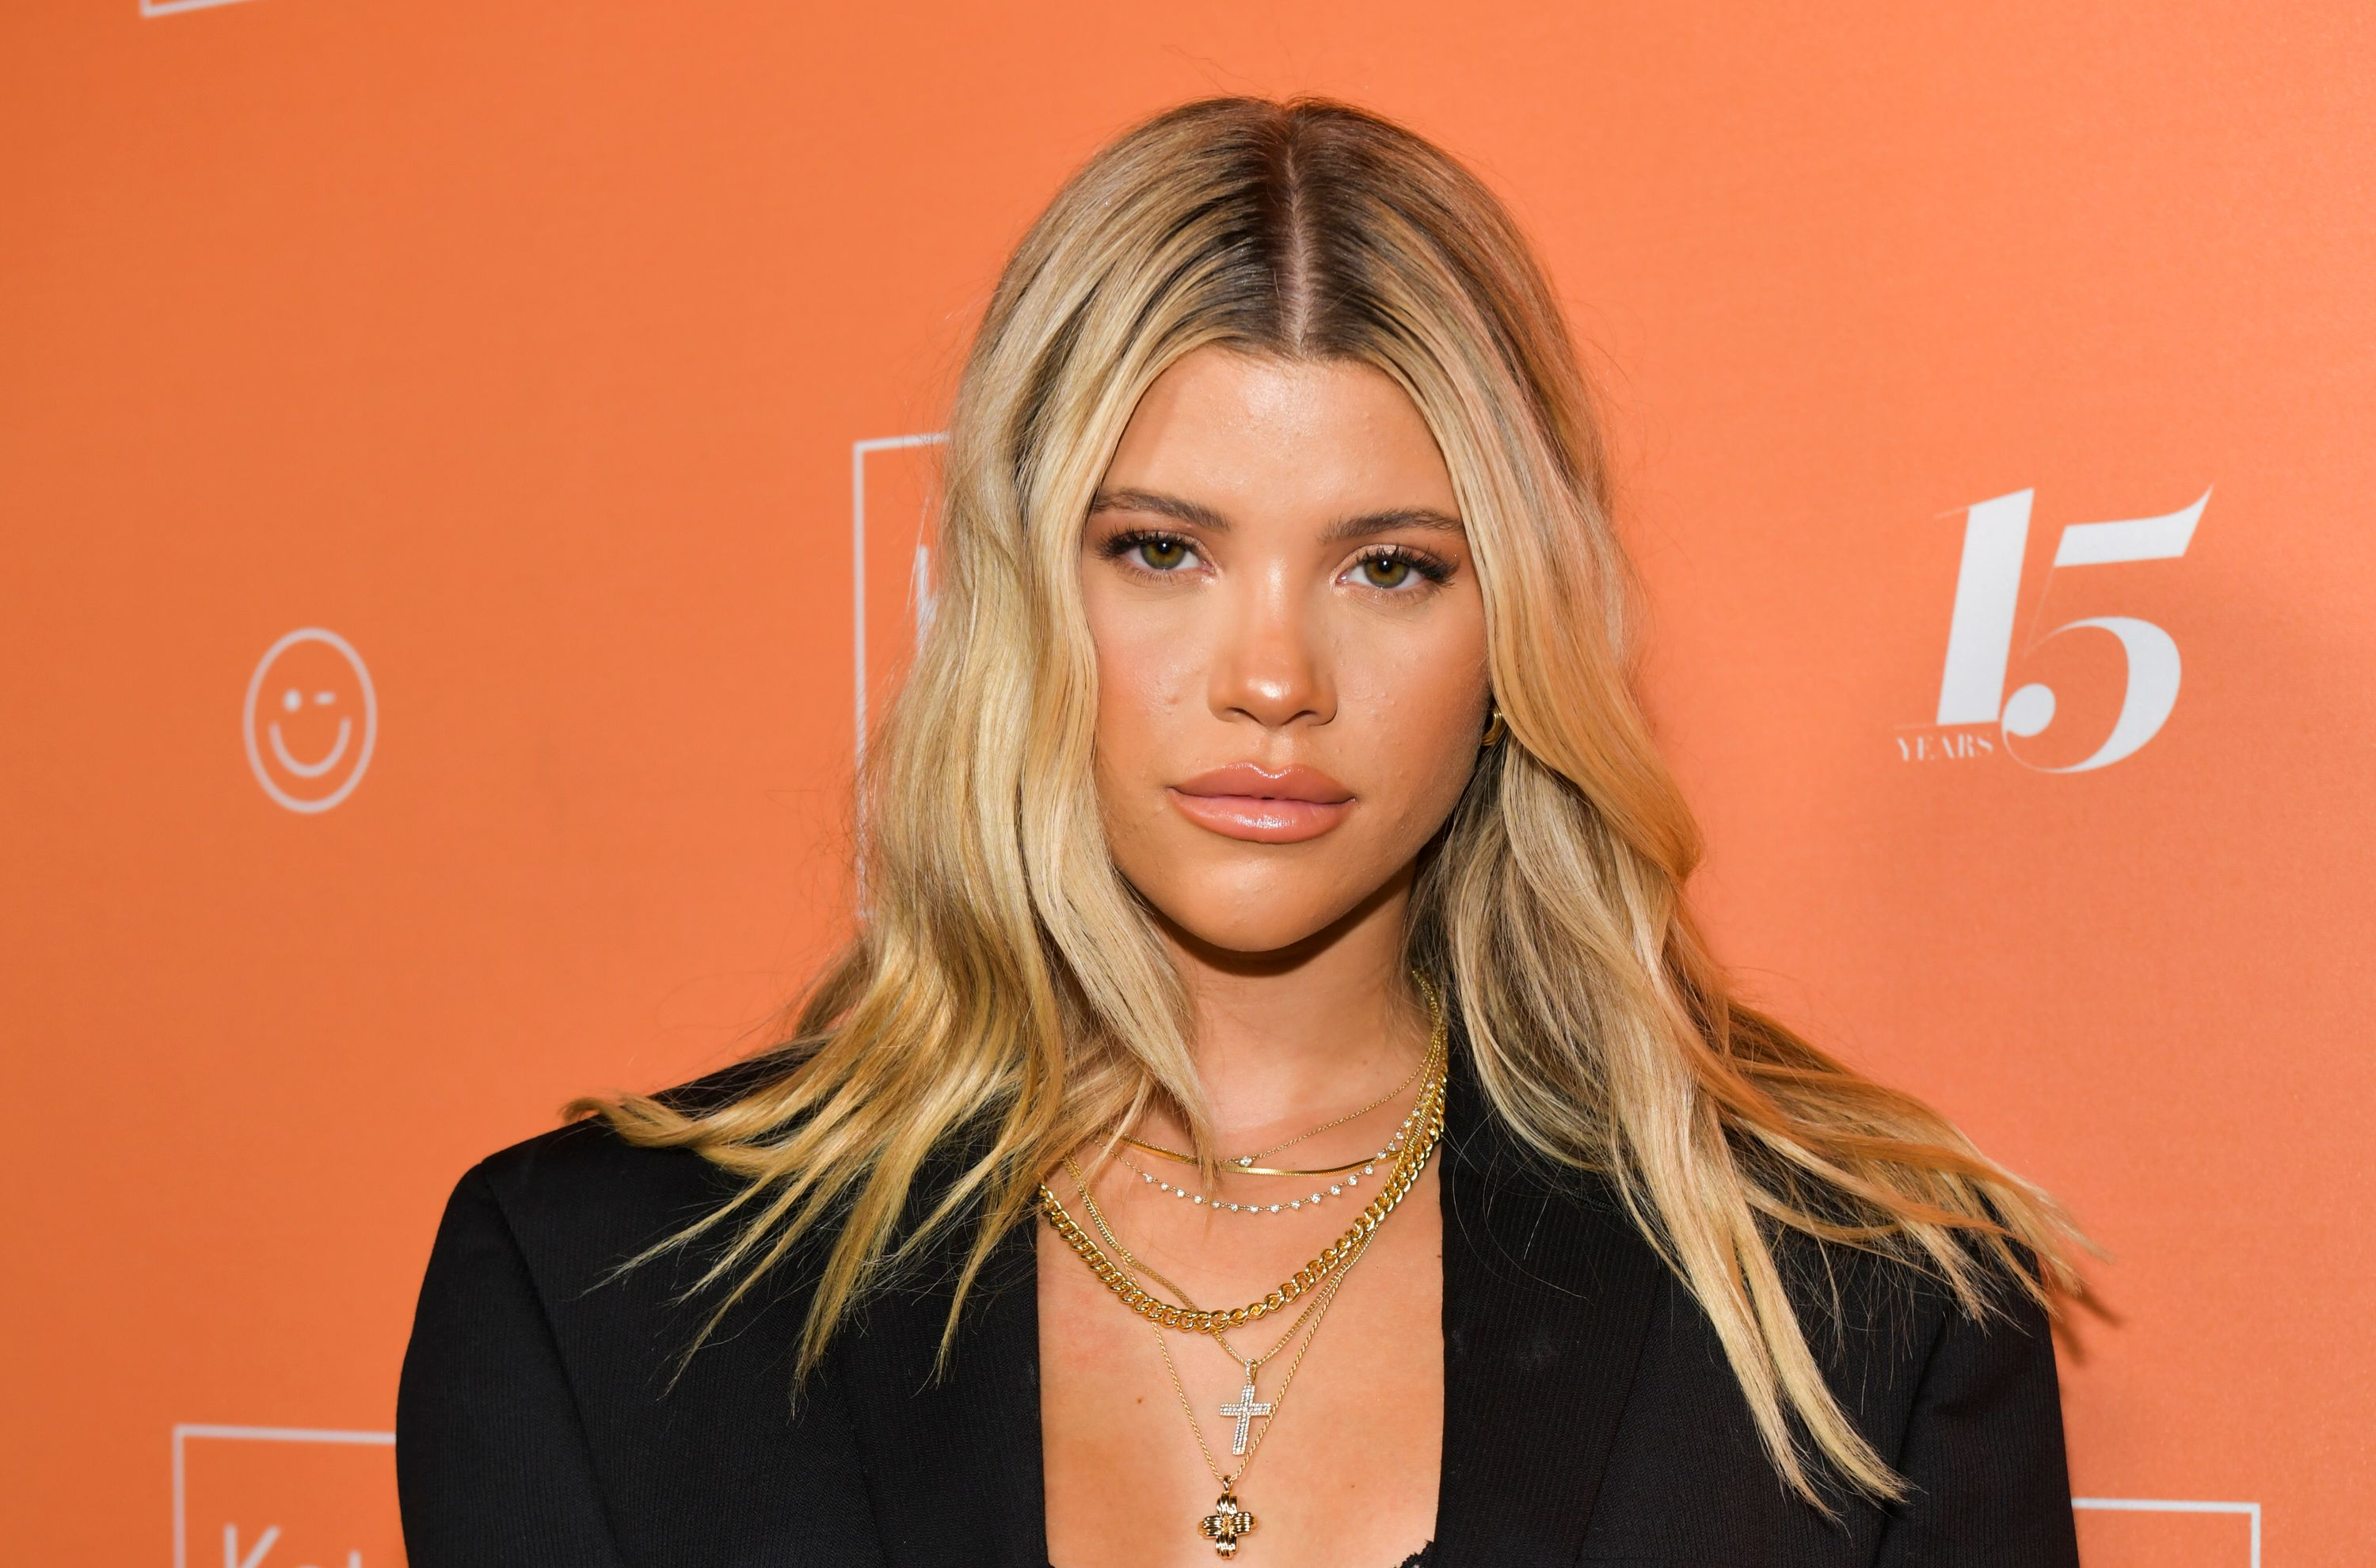 Sofia Richie posing while at an event with orange backdrop.